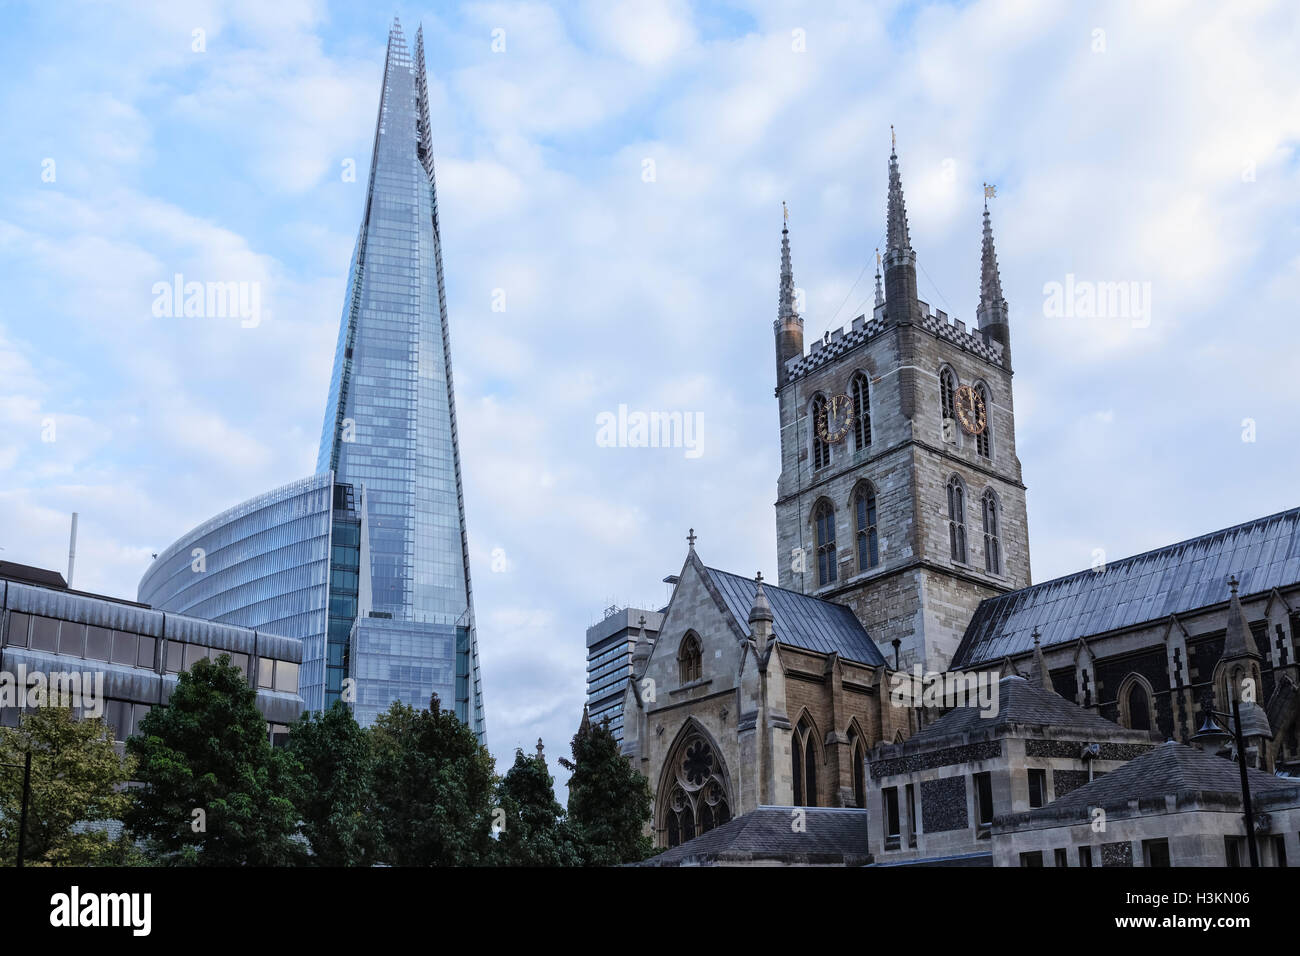 The Shard with the Southwark Cathedral, London, England, UK - Stock Image